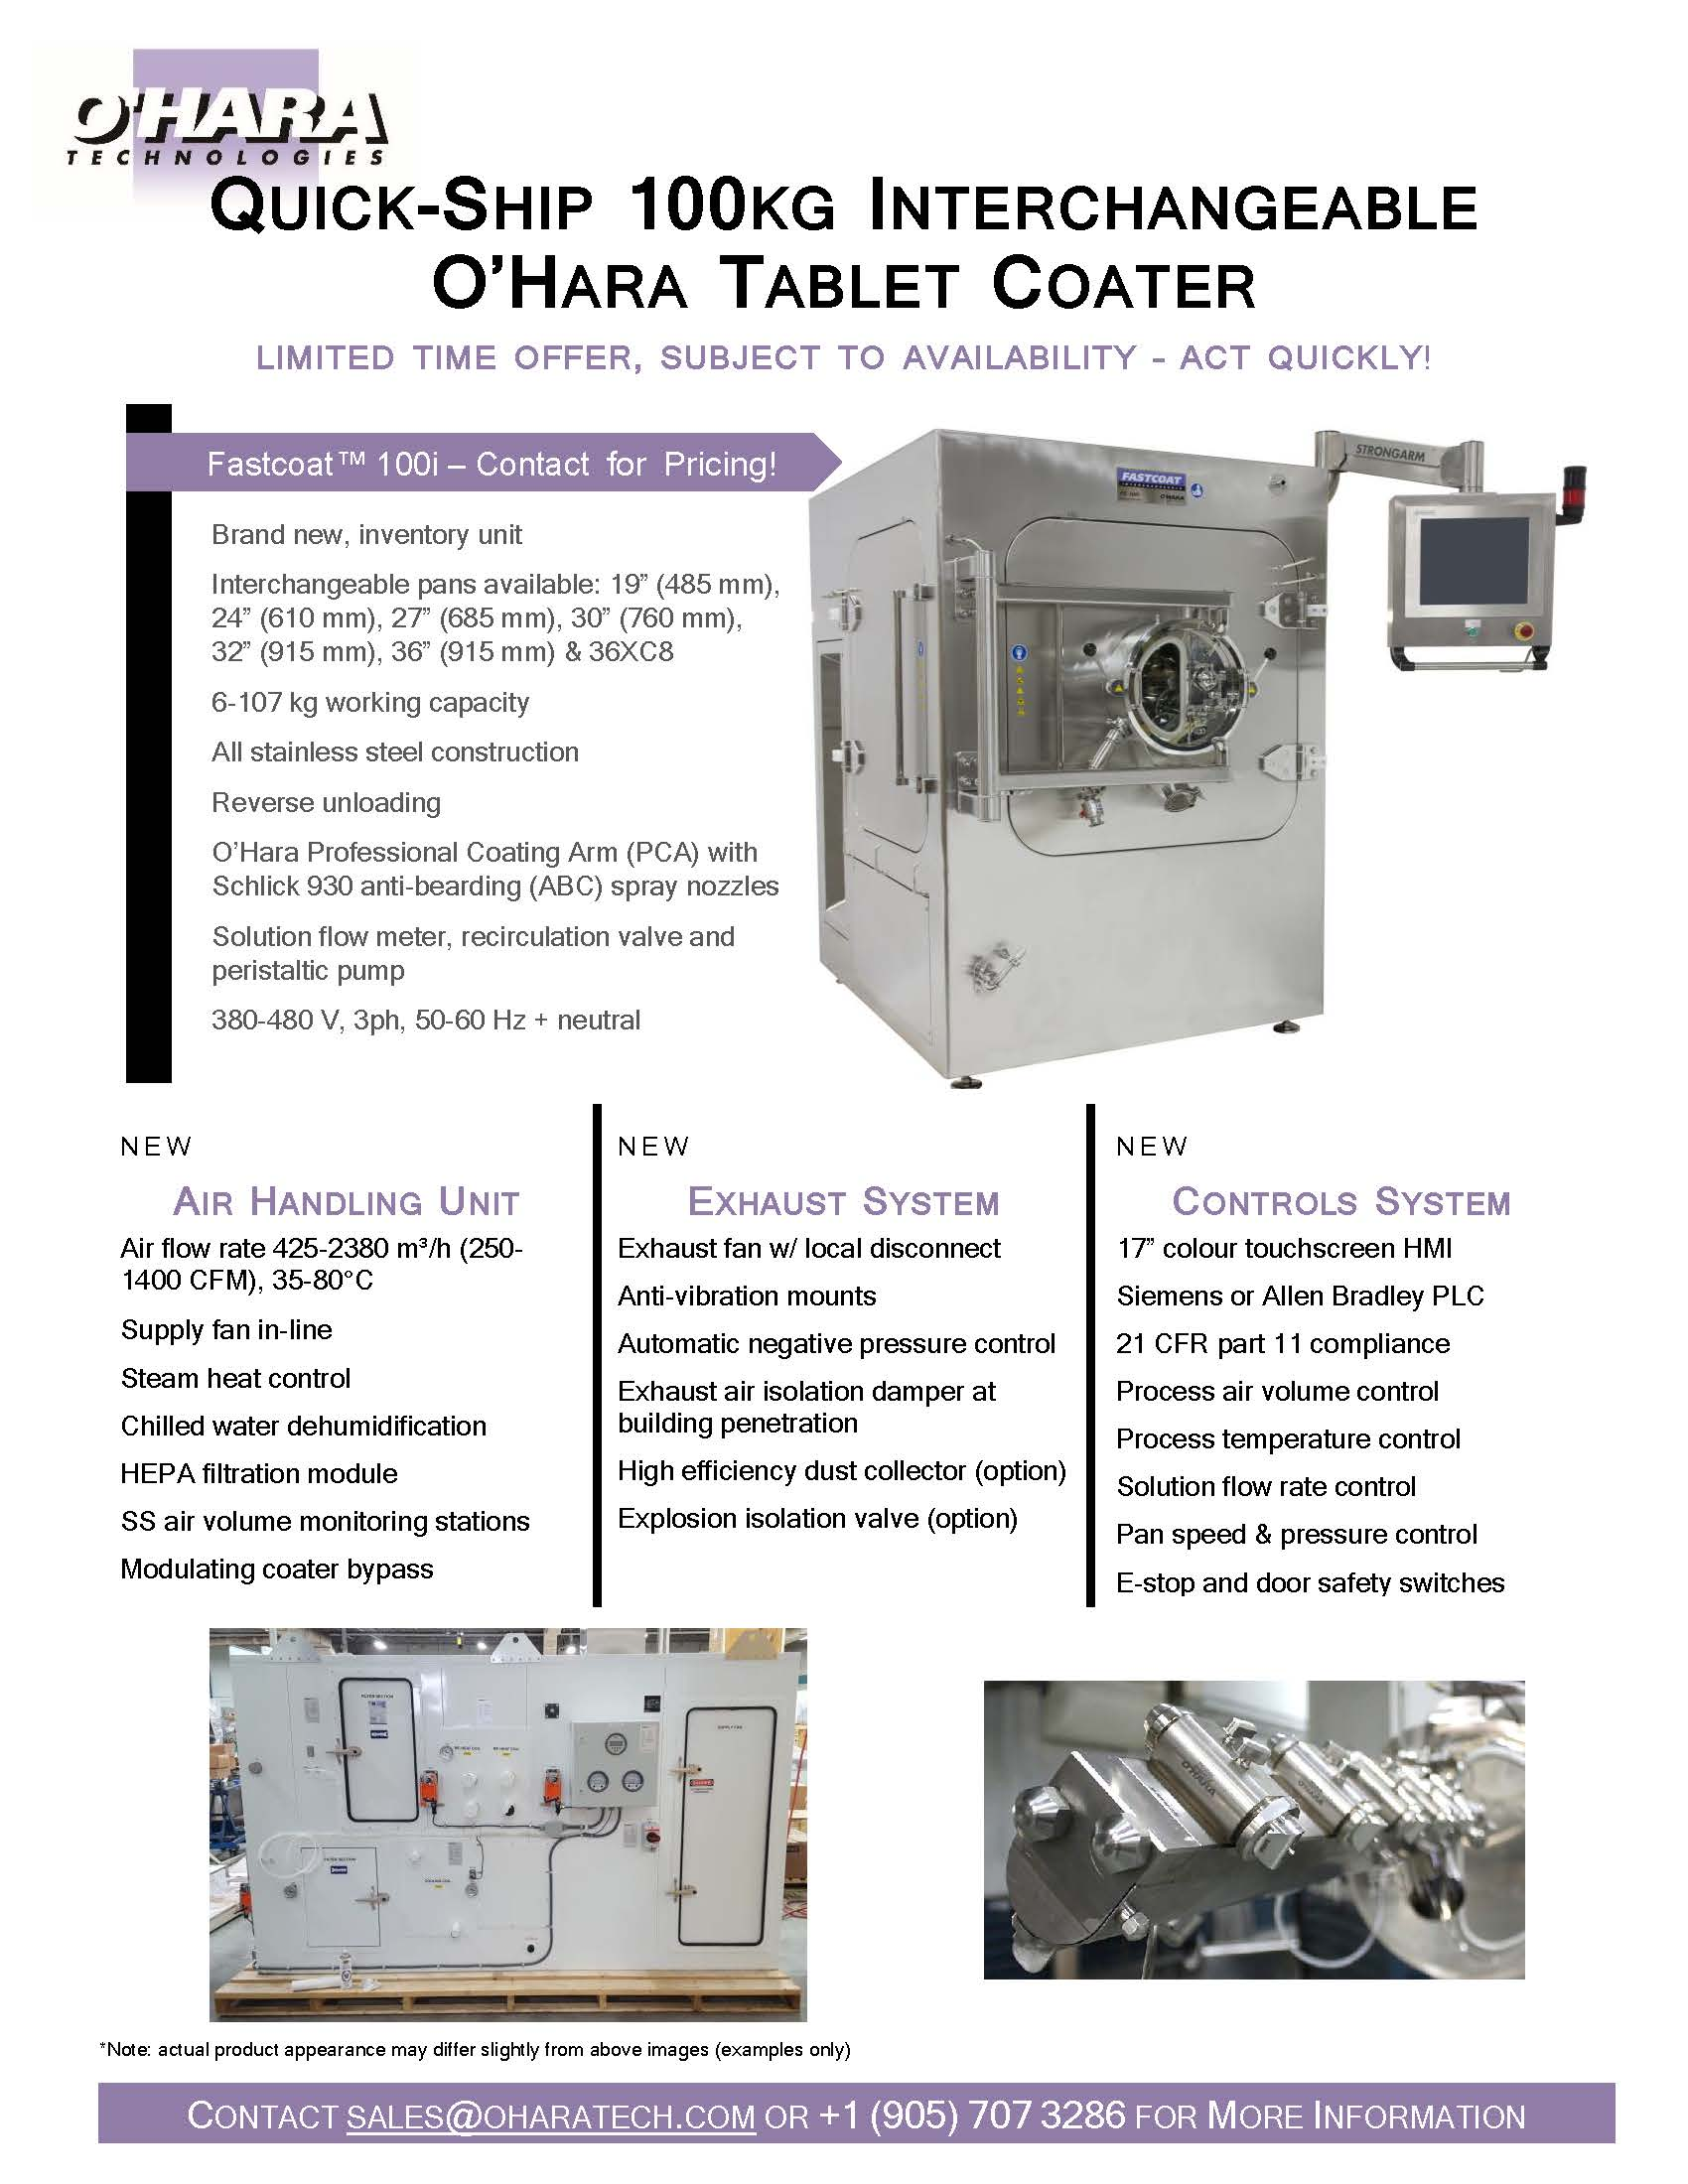 BRAND NEW QUICK-SHIP 100 KG INTERCHANGEABLE O'HARA TABLET COATER